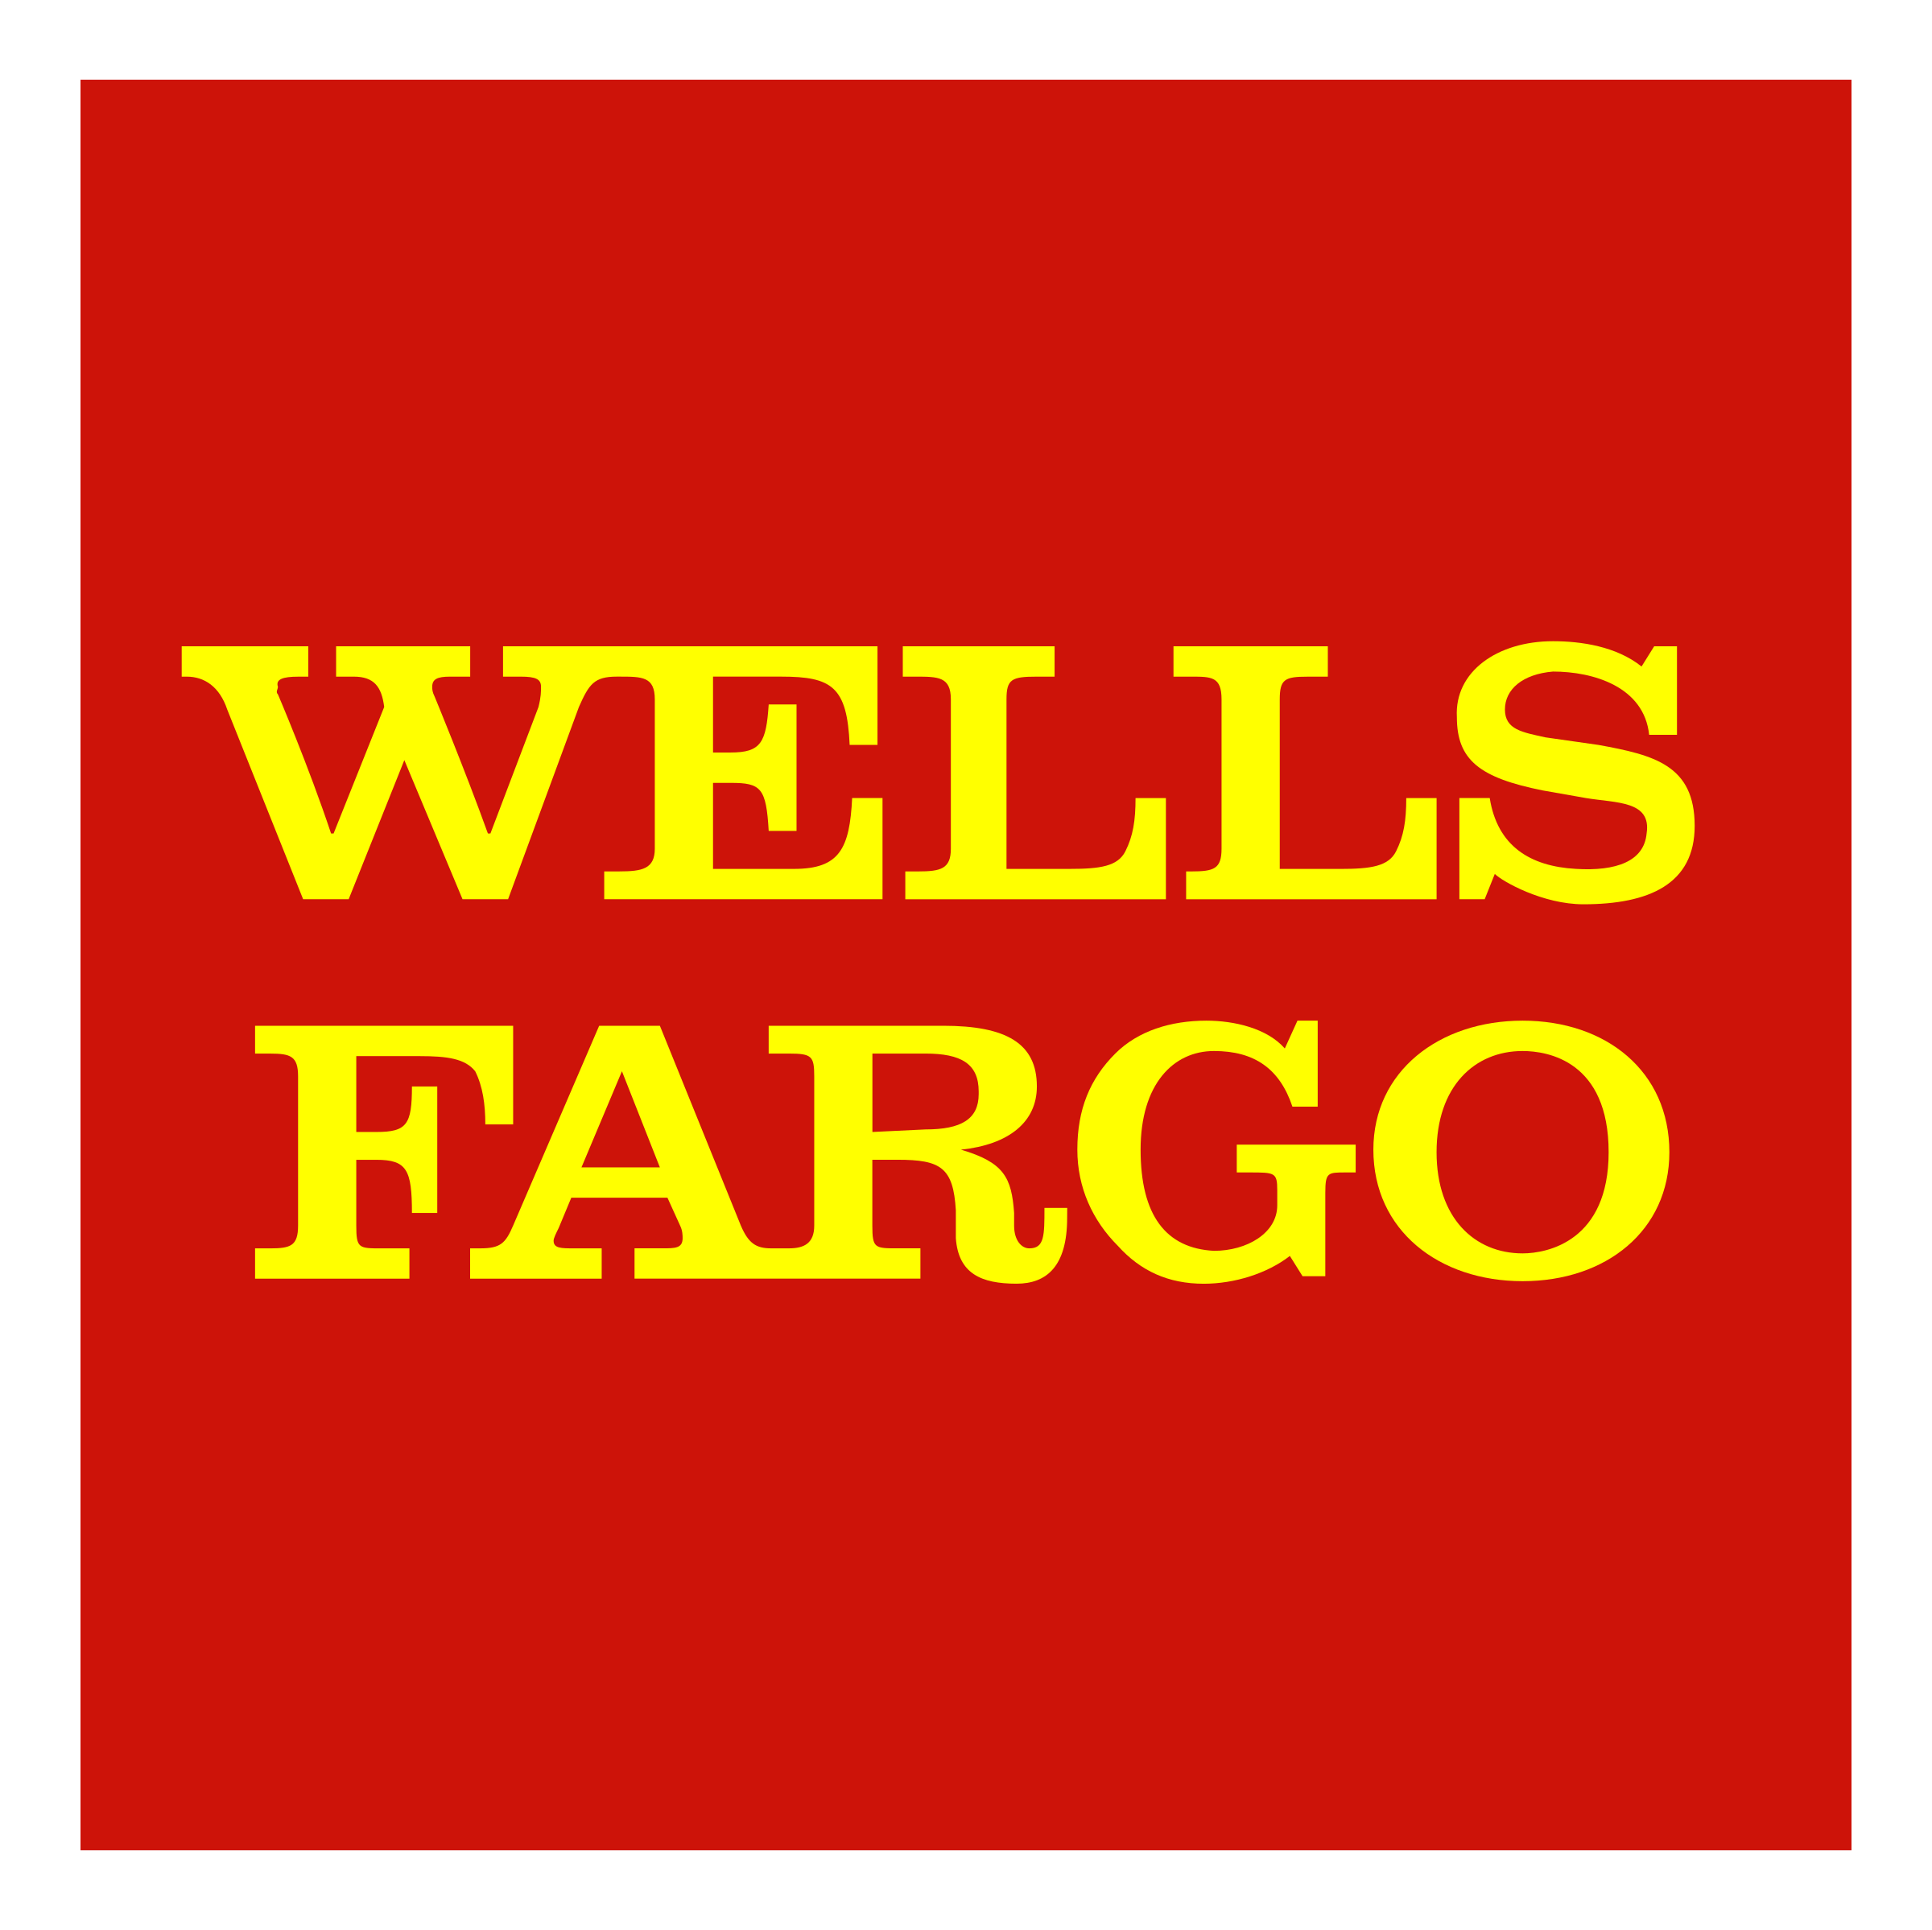 Wells fargo logo transparent